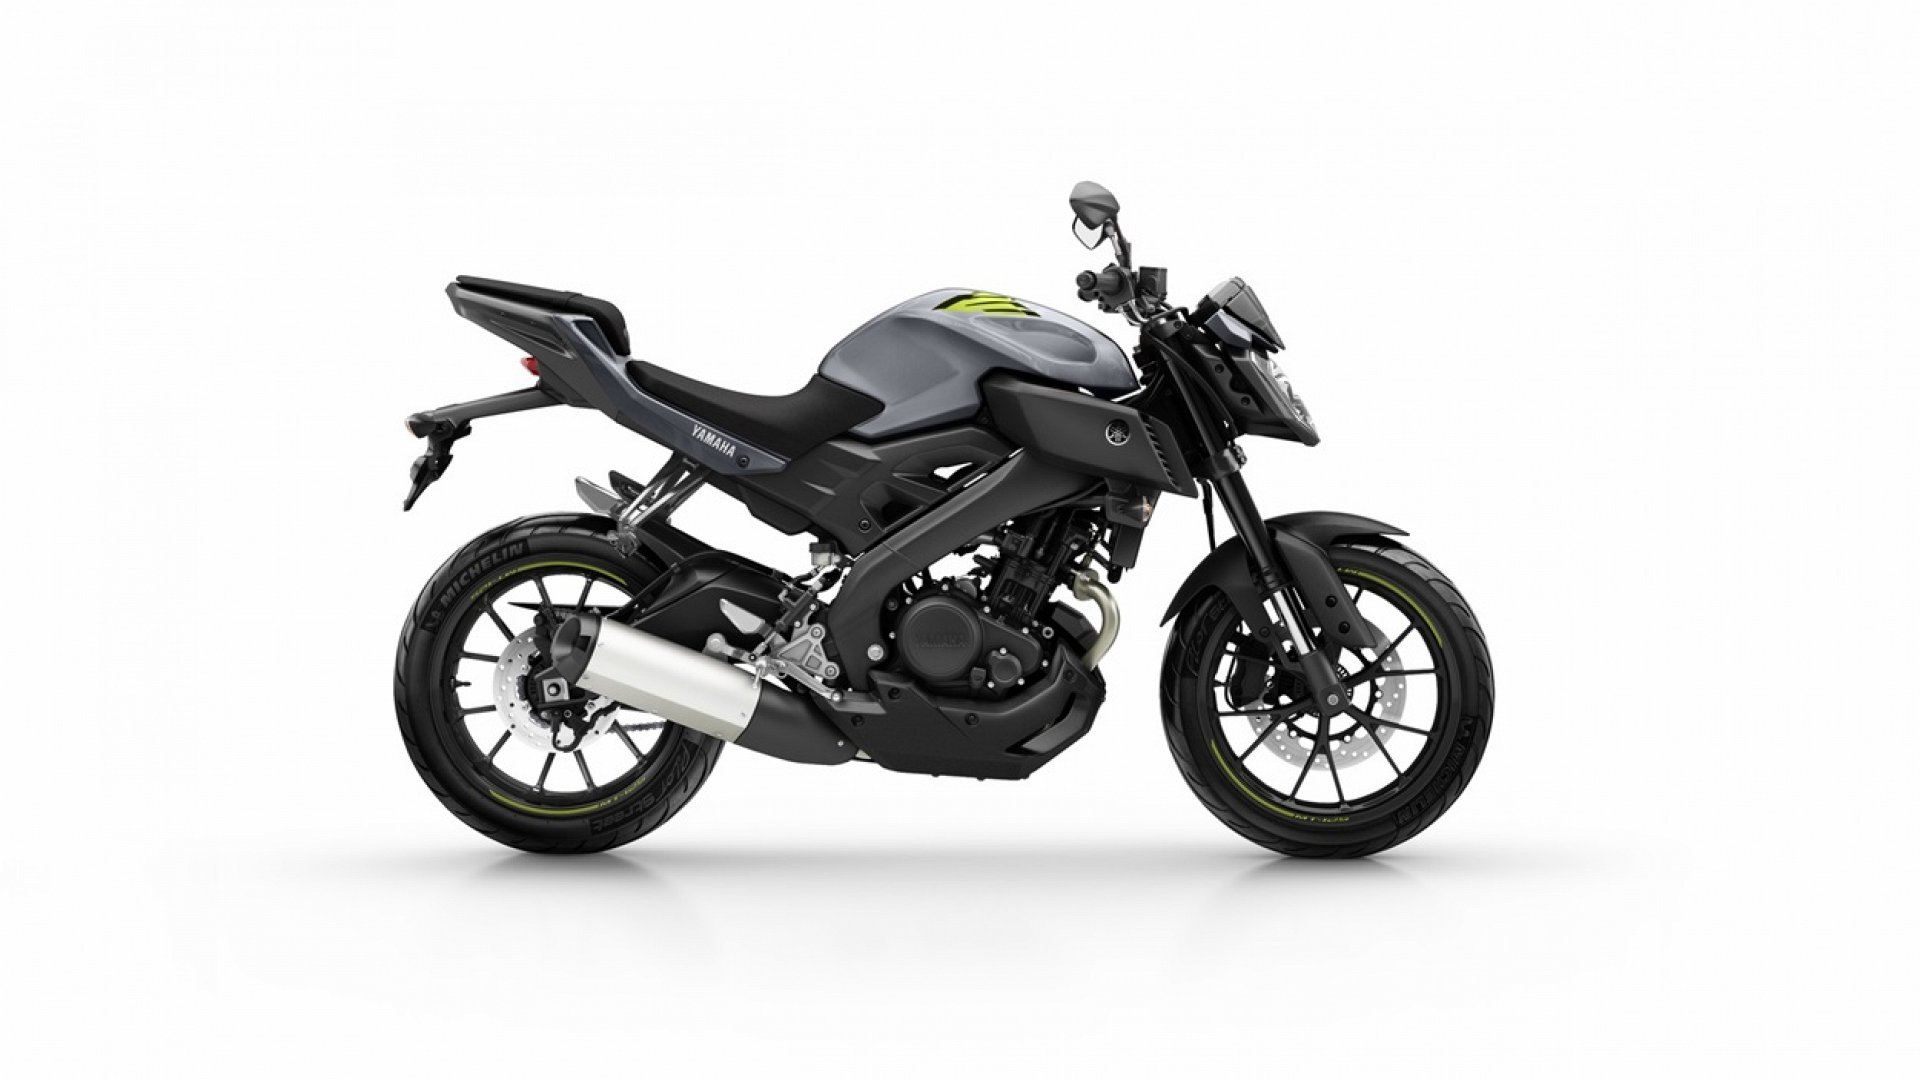 New 2016 Yamaha MT-125 / ABS for sale. Finance available and part ...: www.cmcbikes.com/new-yamaha-motorcycles/2016-yamaha-mt-125-abs